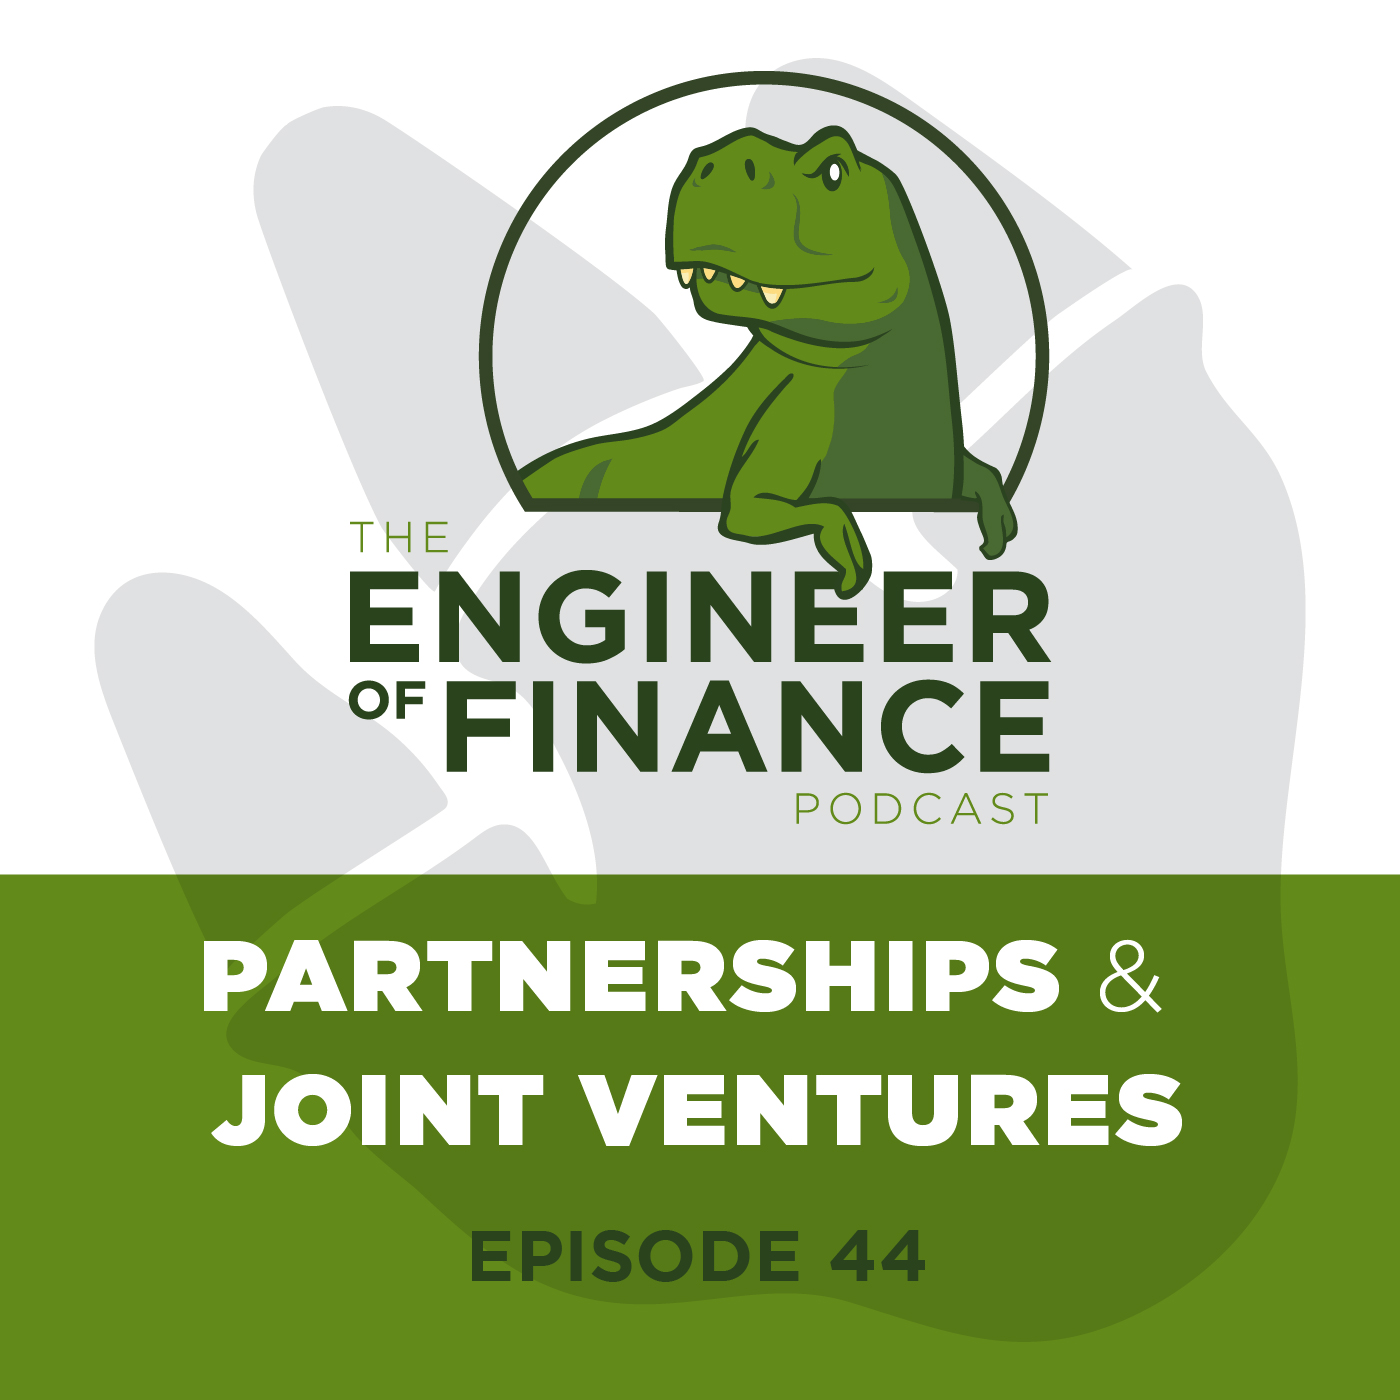 Partnerships & Joint Ventures – Episode 44